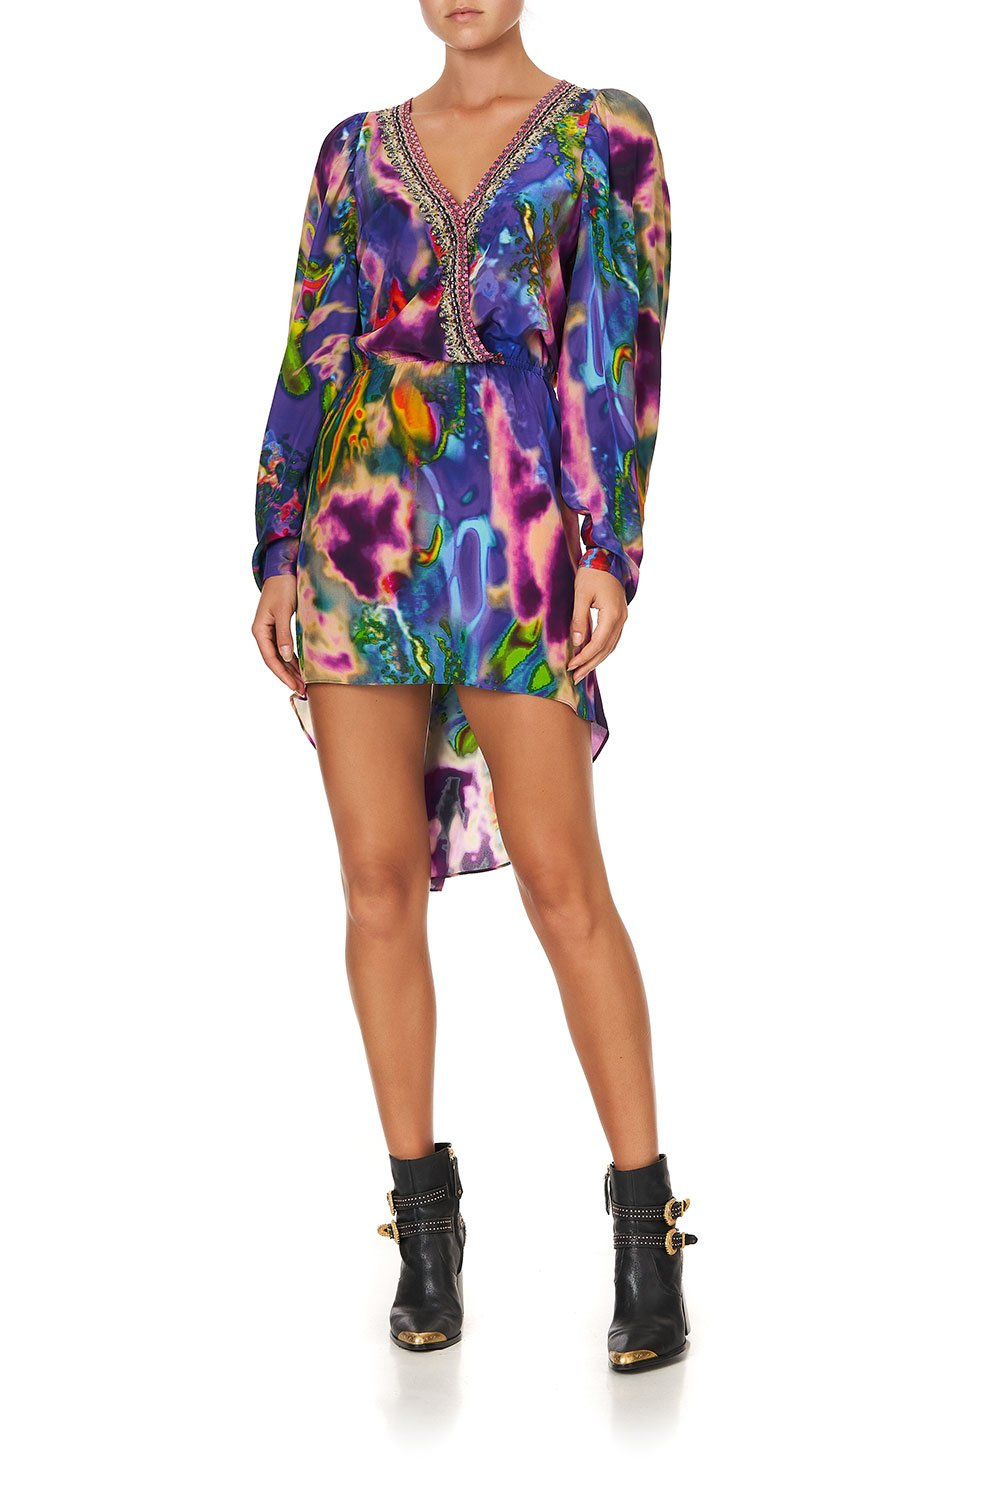 CROSS FRONT HIGH LOW MINI DRESS ACID ABBEY